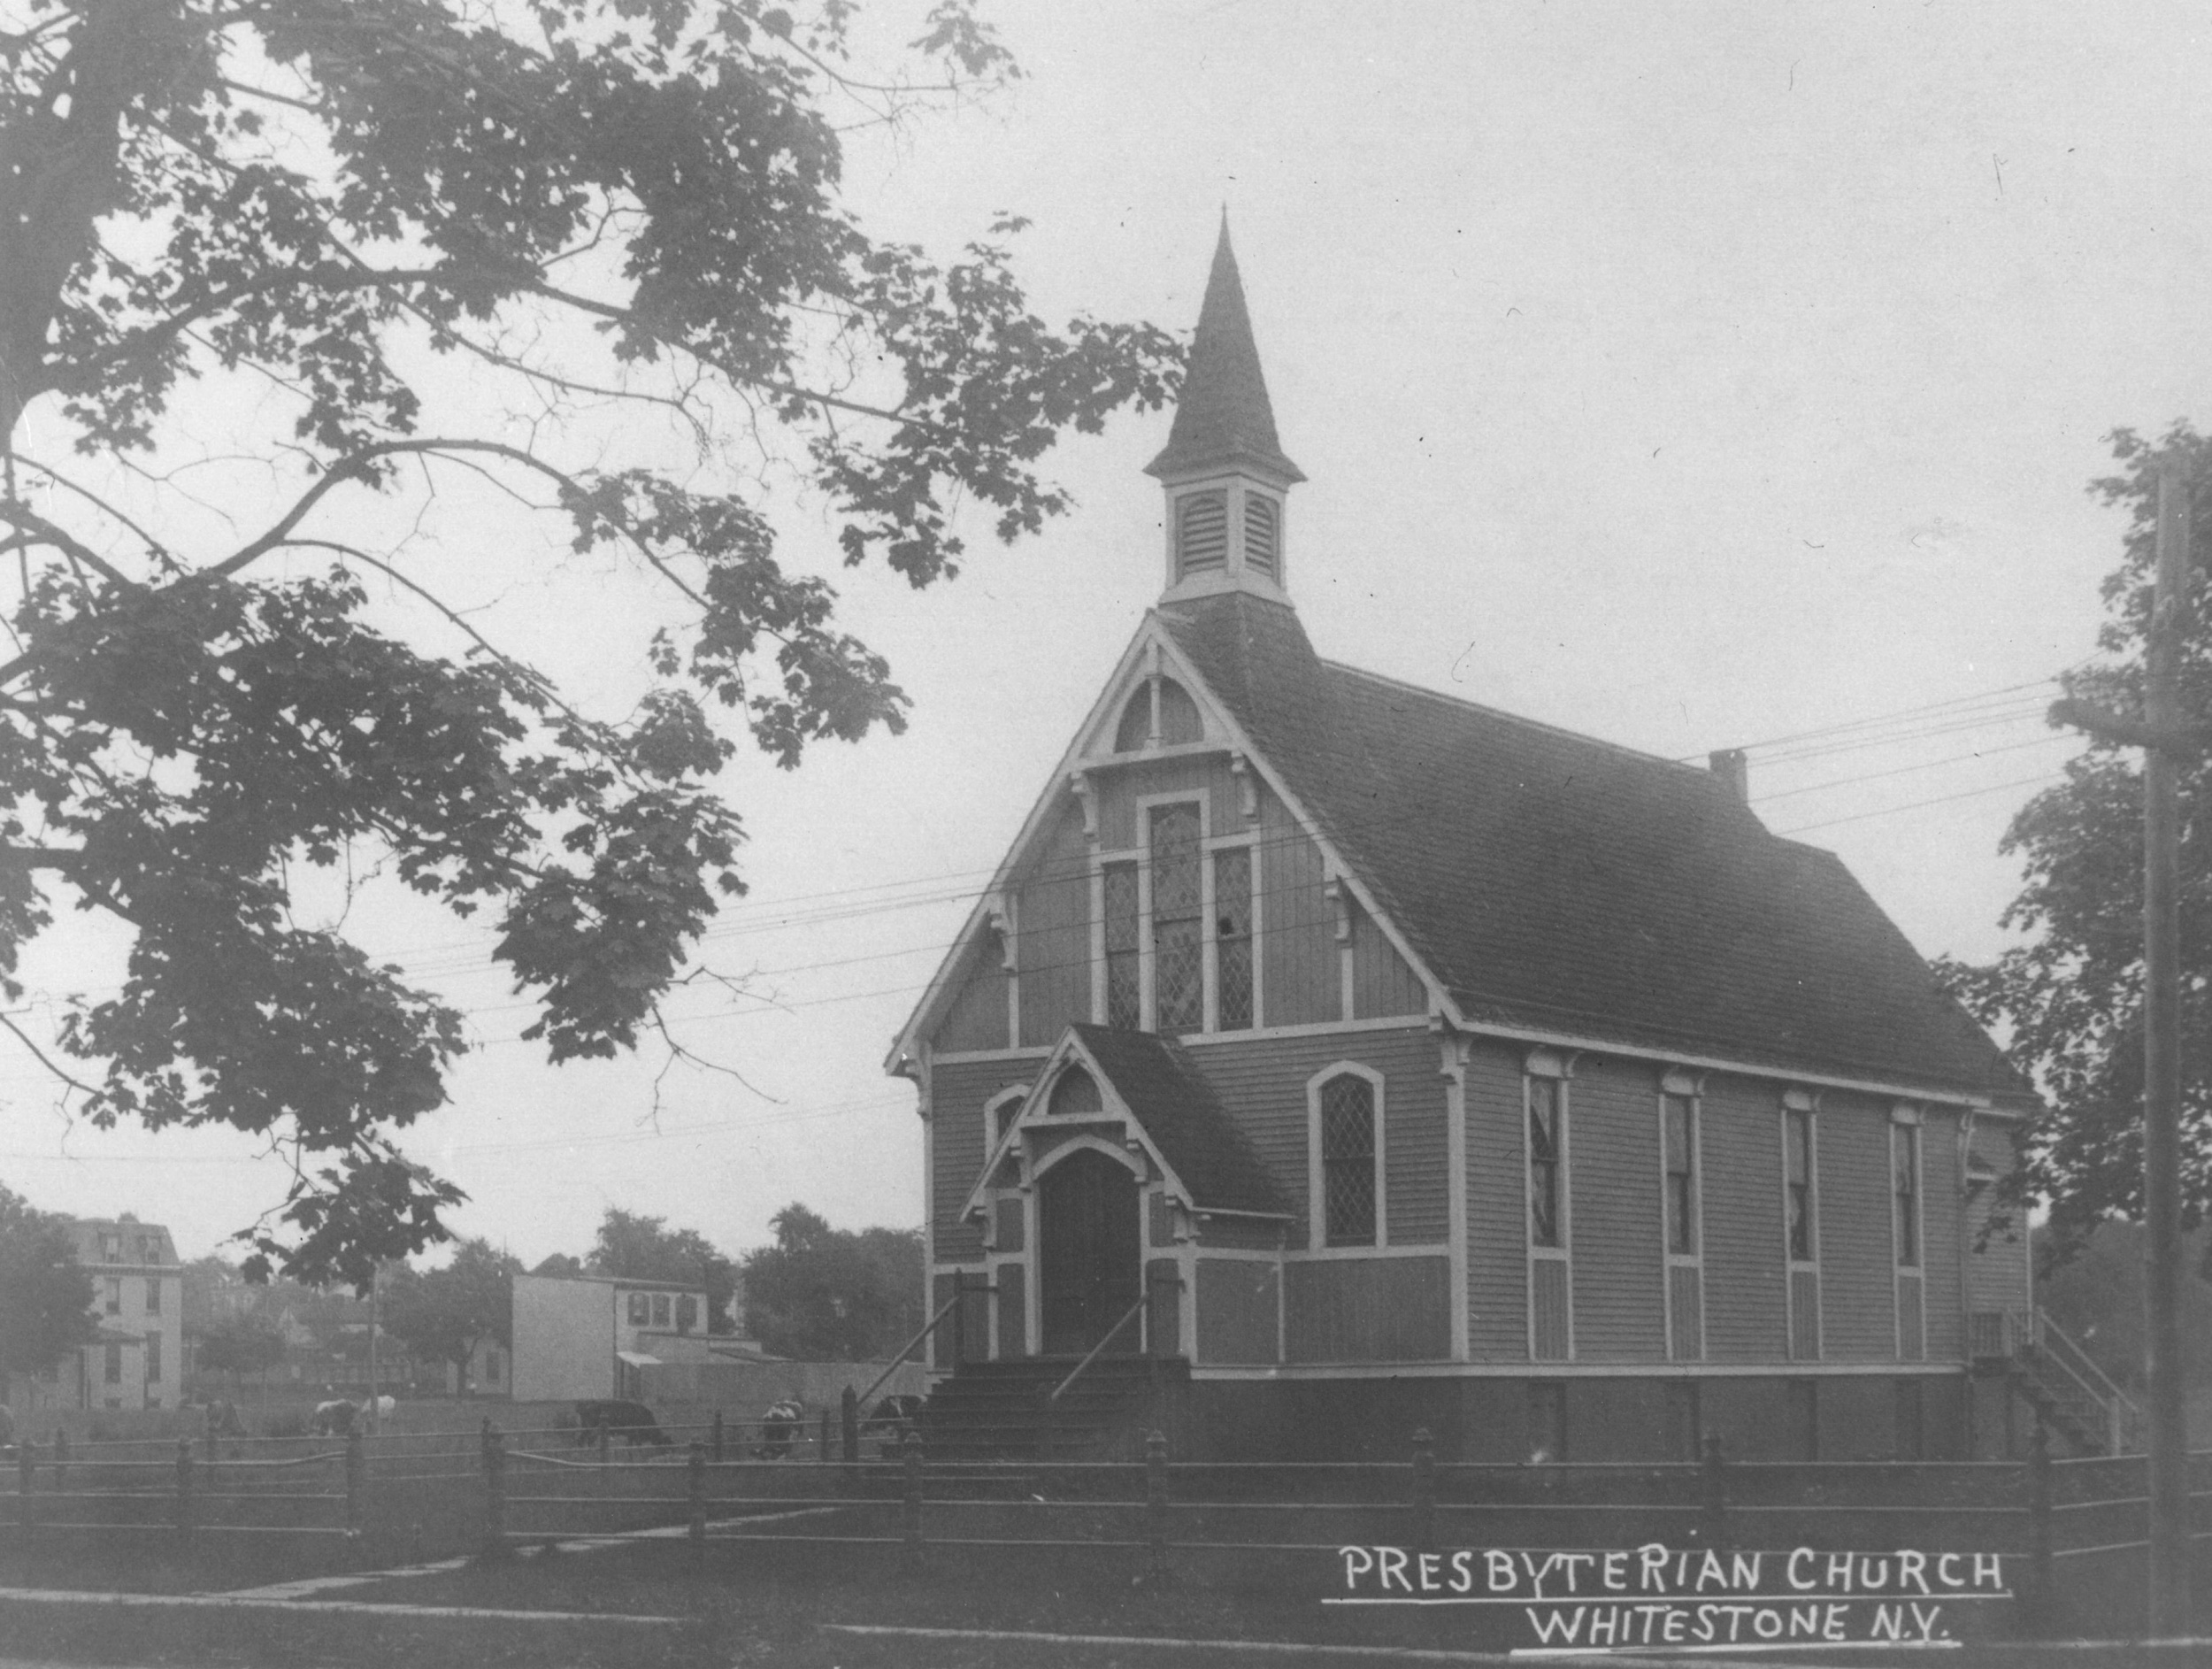 The church building in the early 1900s, before the construction of the auditorium. Note the cows grazing just beside the church!